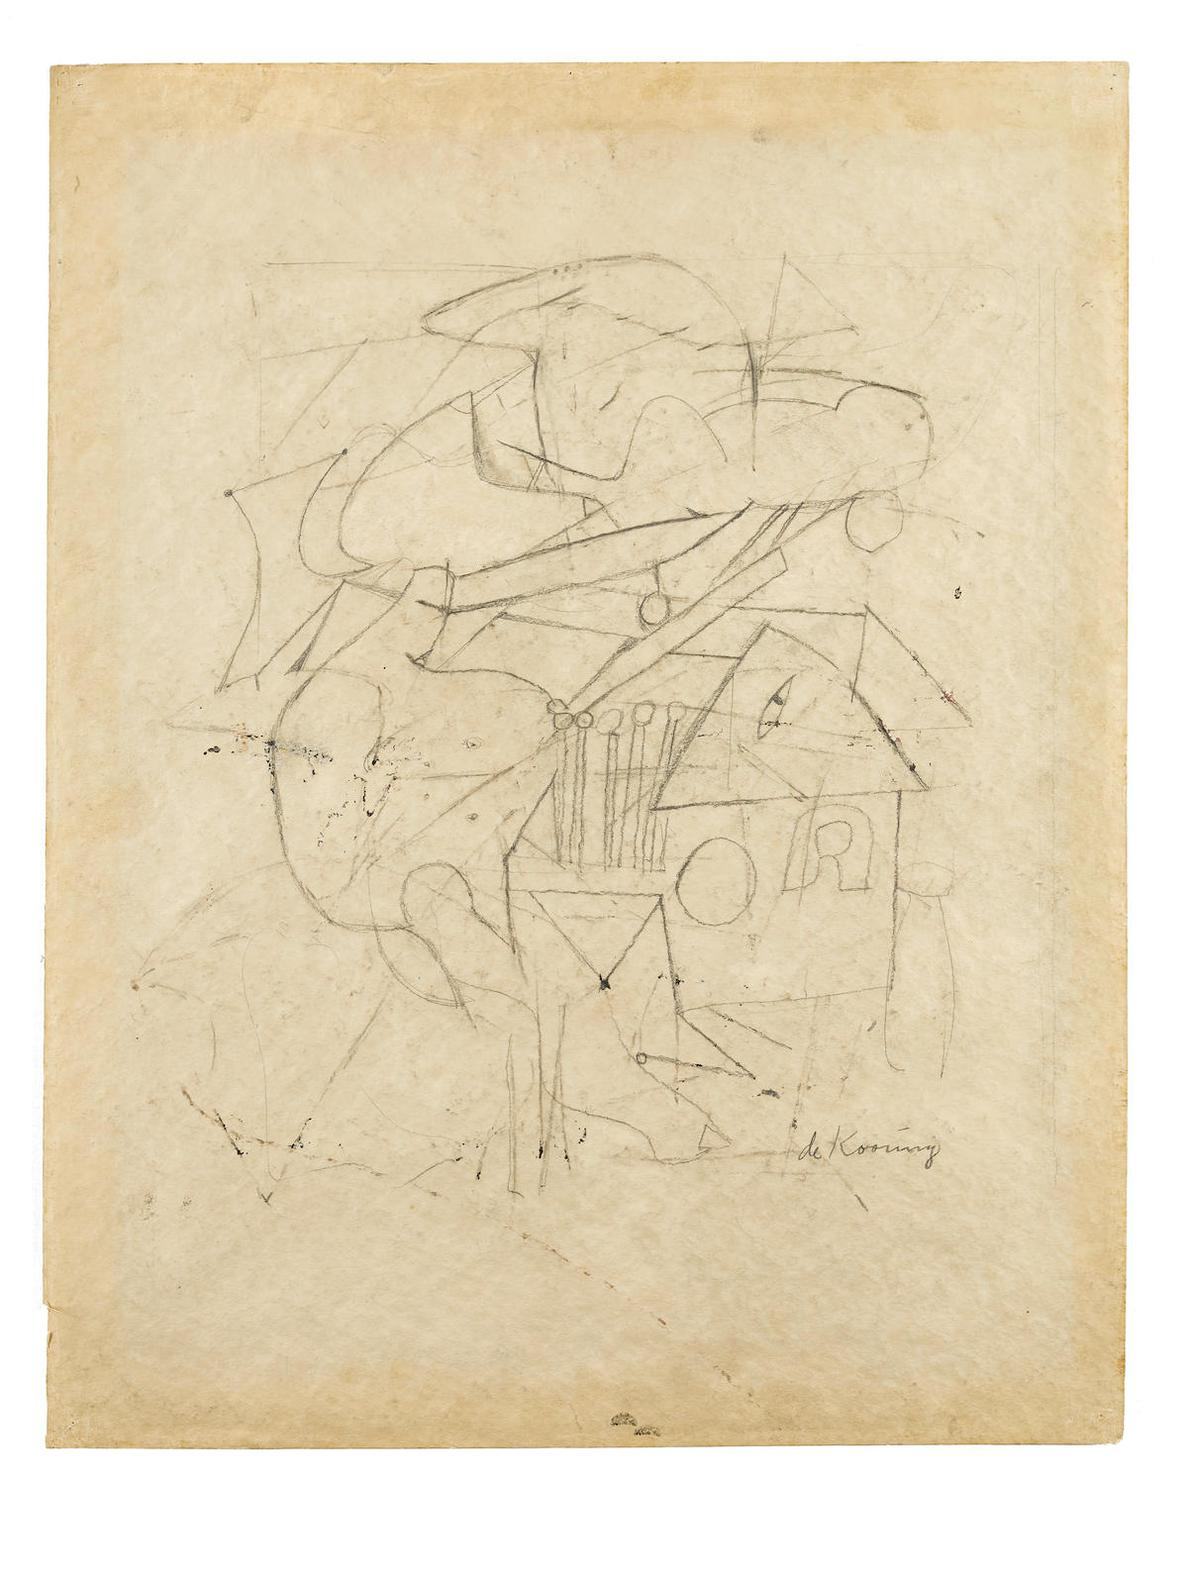 Willem de Kooning-Untitled (Study For A Painting), 1945-1948-1948